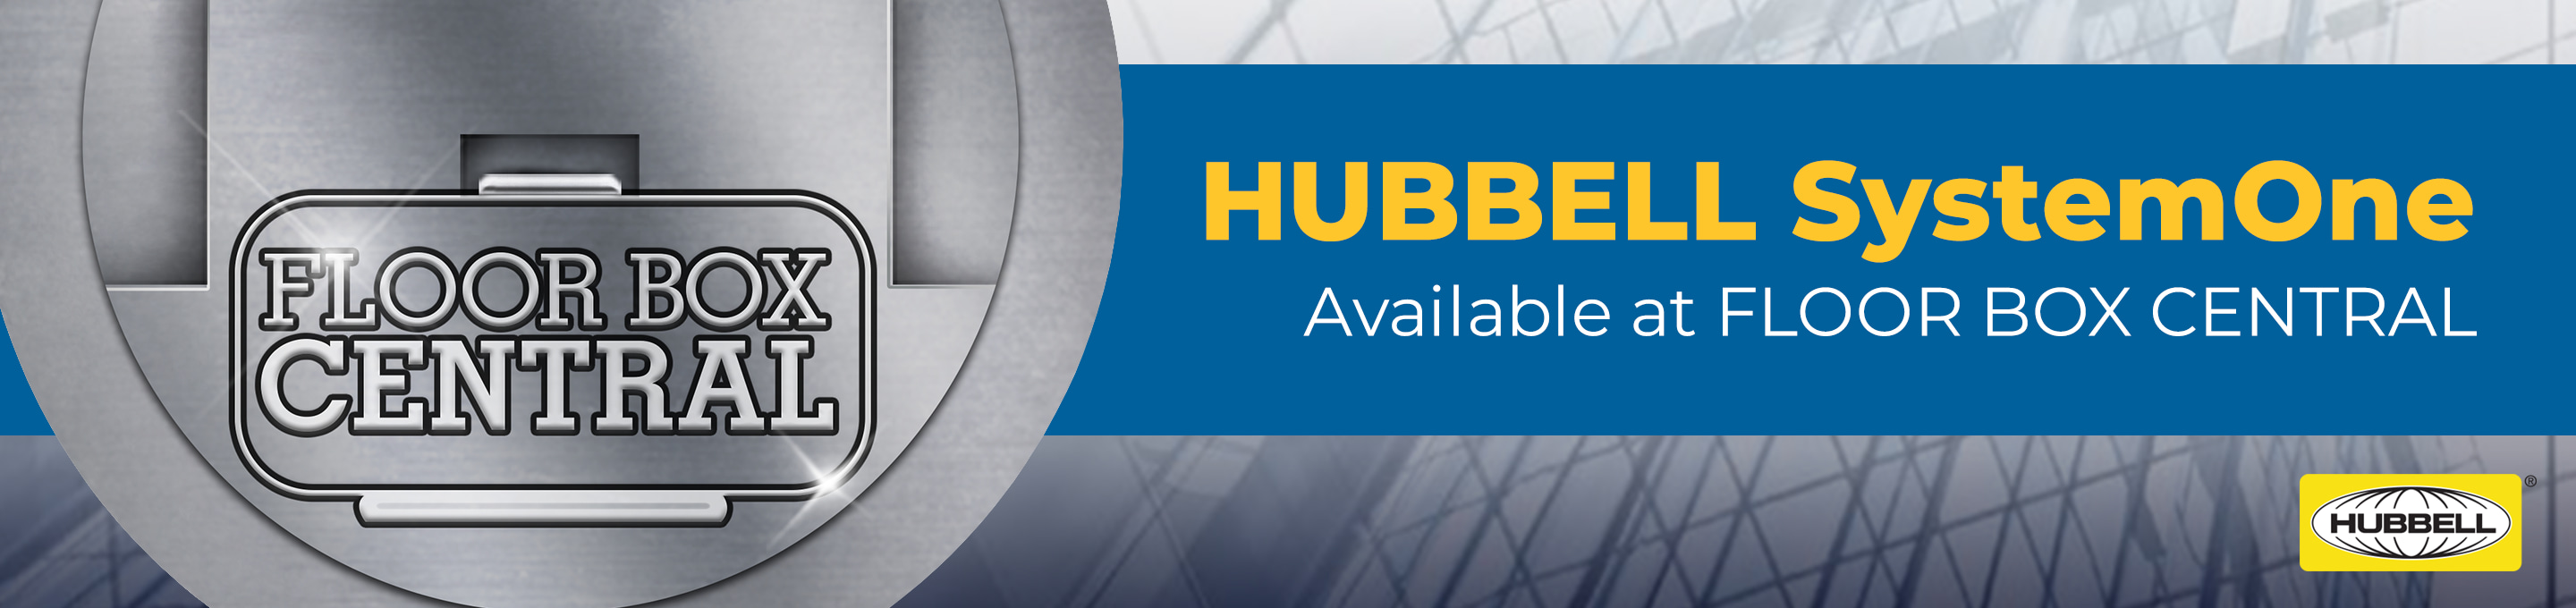 Floor Box Central- the largest inventory of Hubbell Floor boxes in the midwest